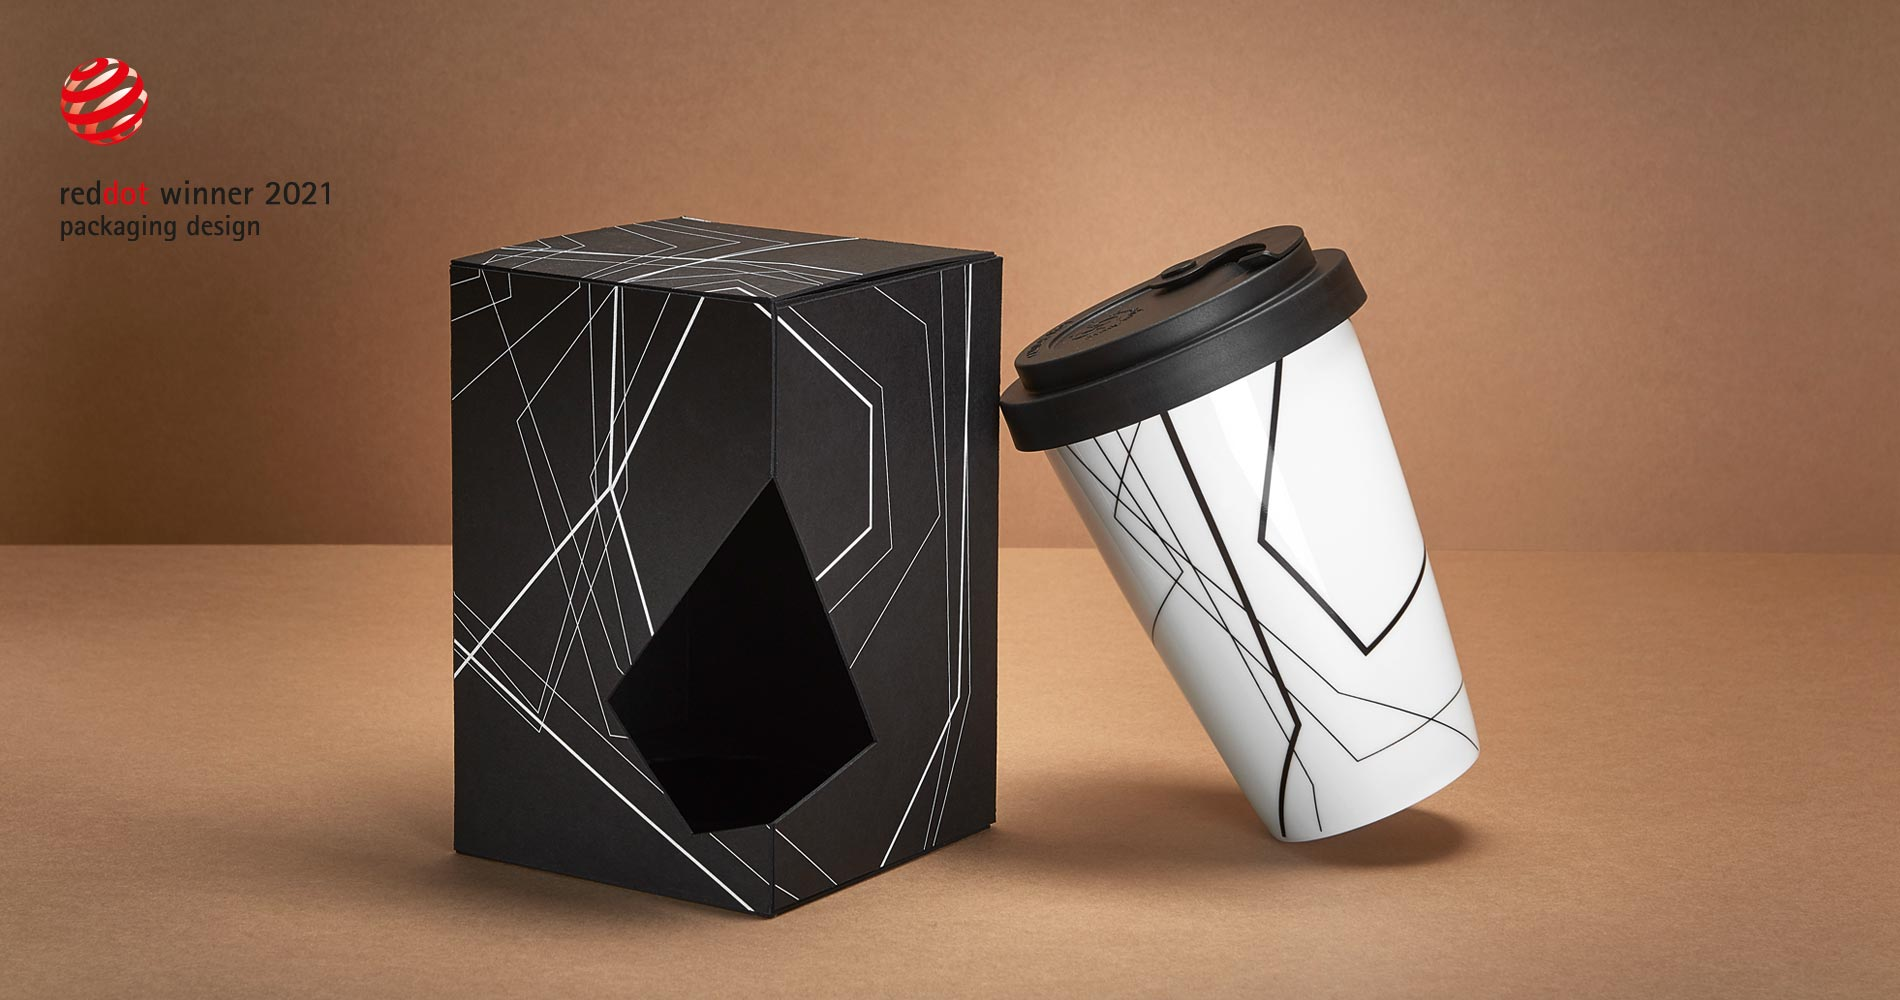 th3 coffee-to-go becher